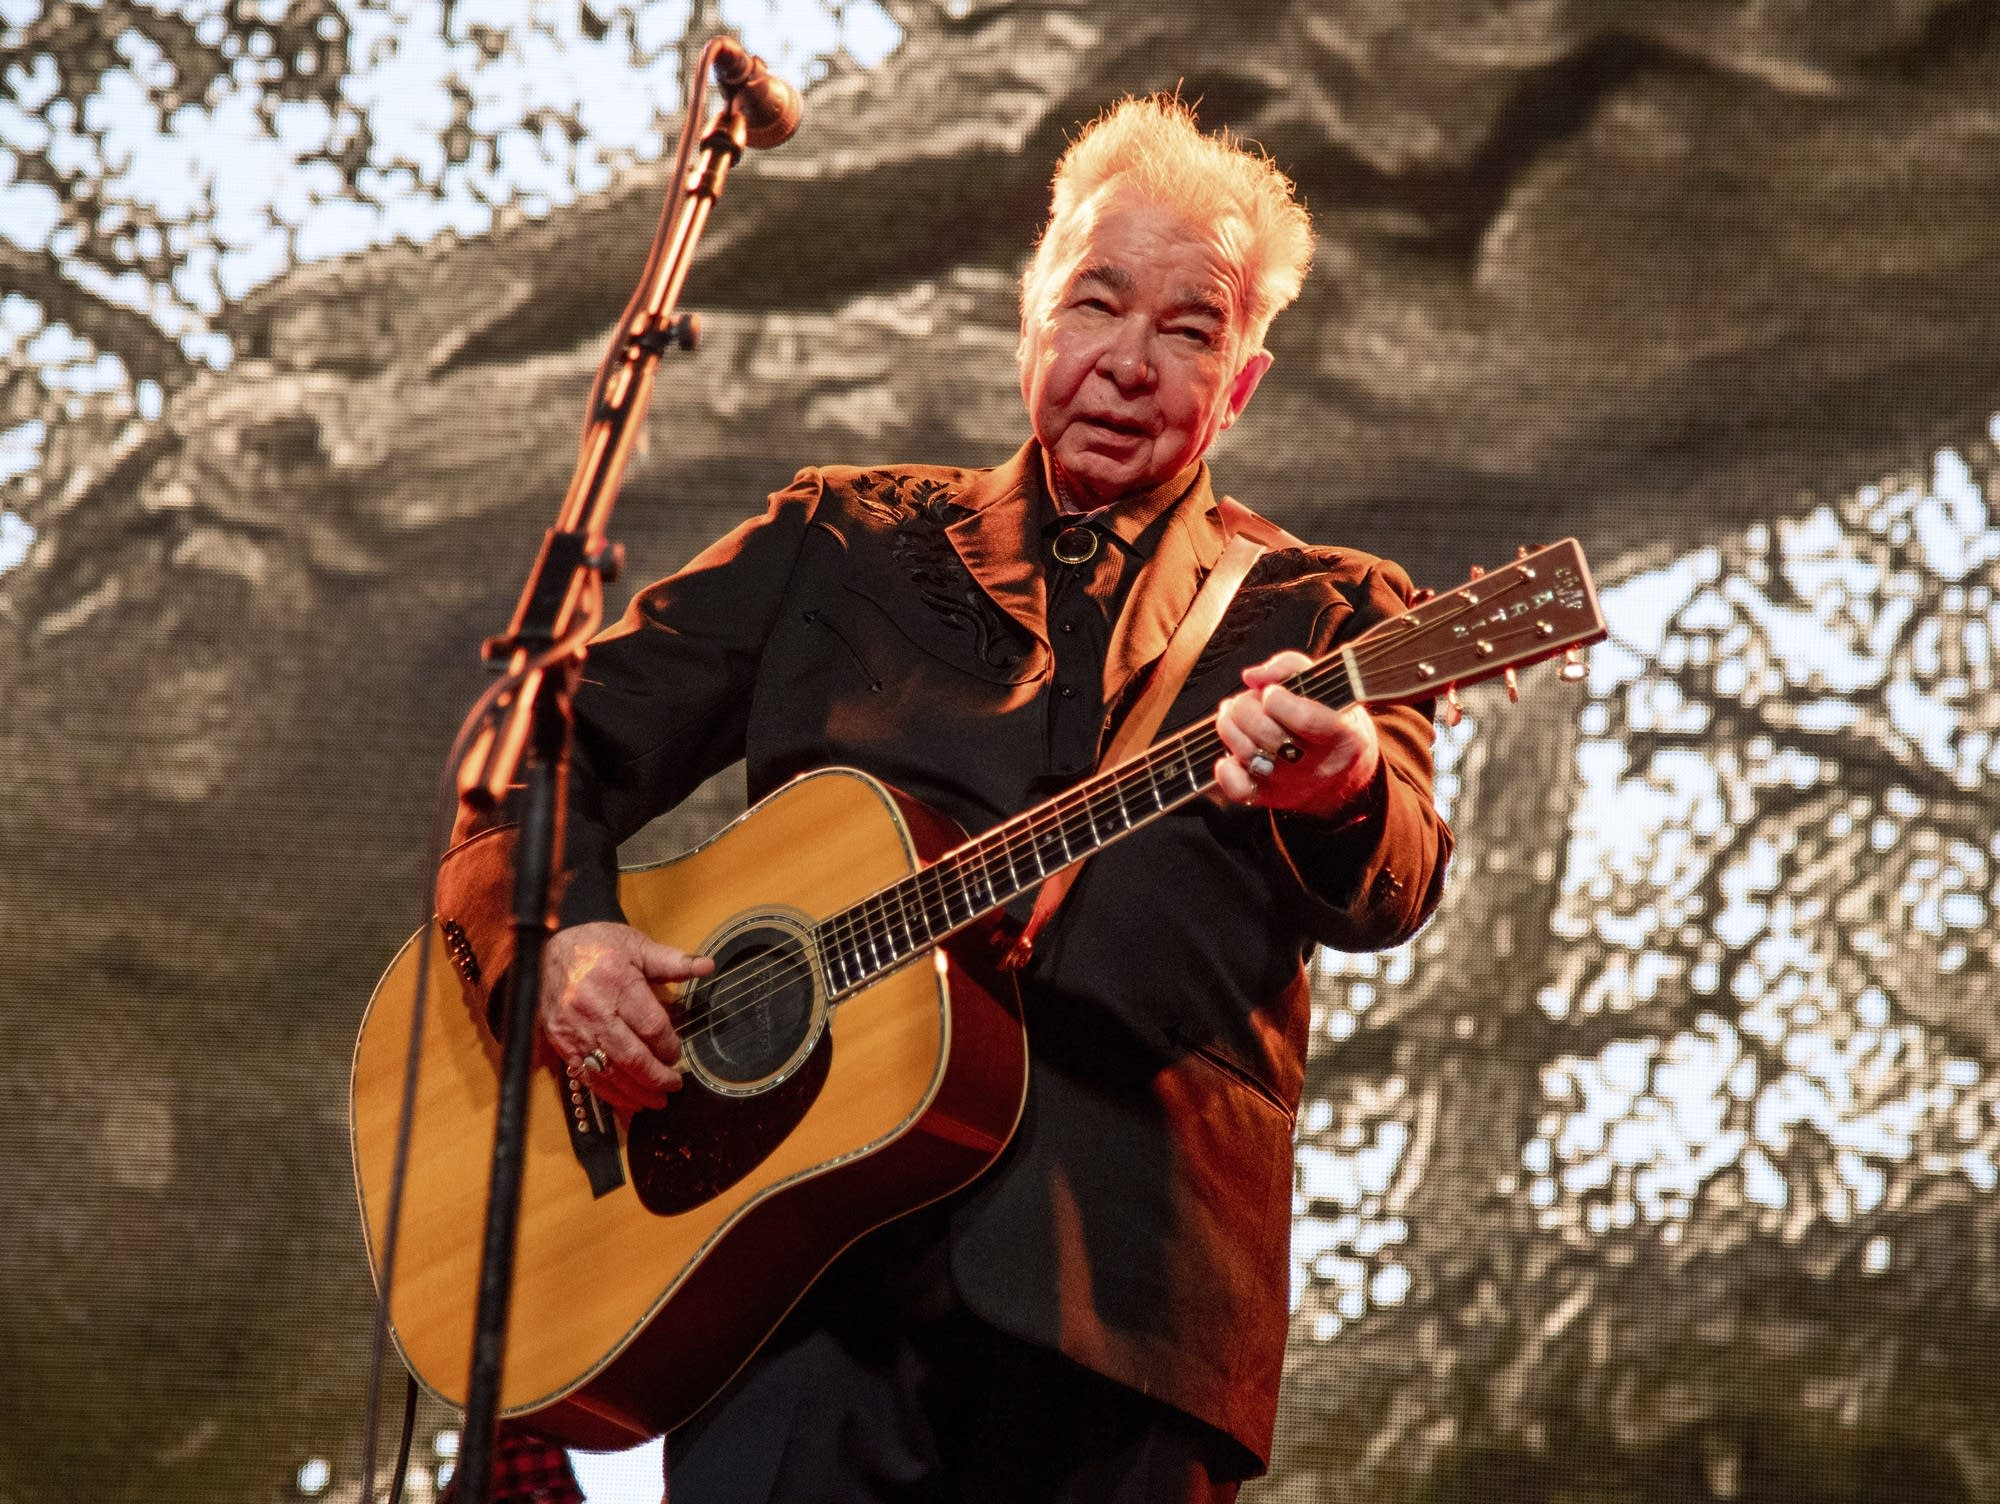 Singer-songwriter John Prine performs